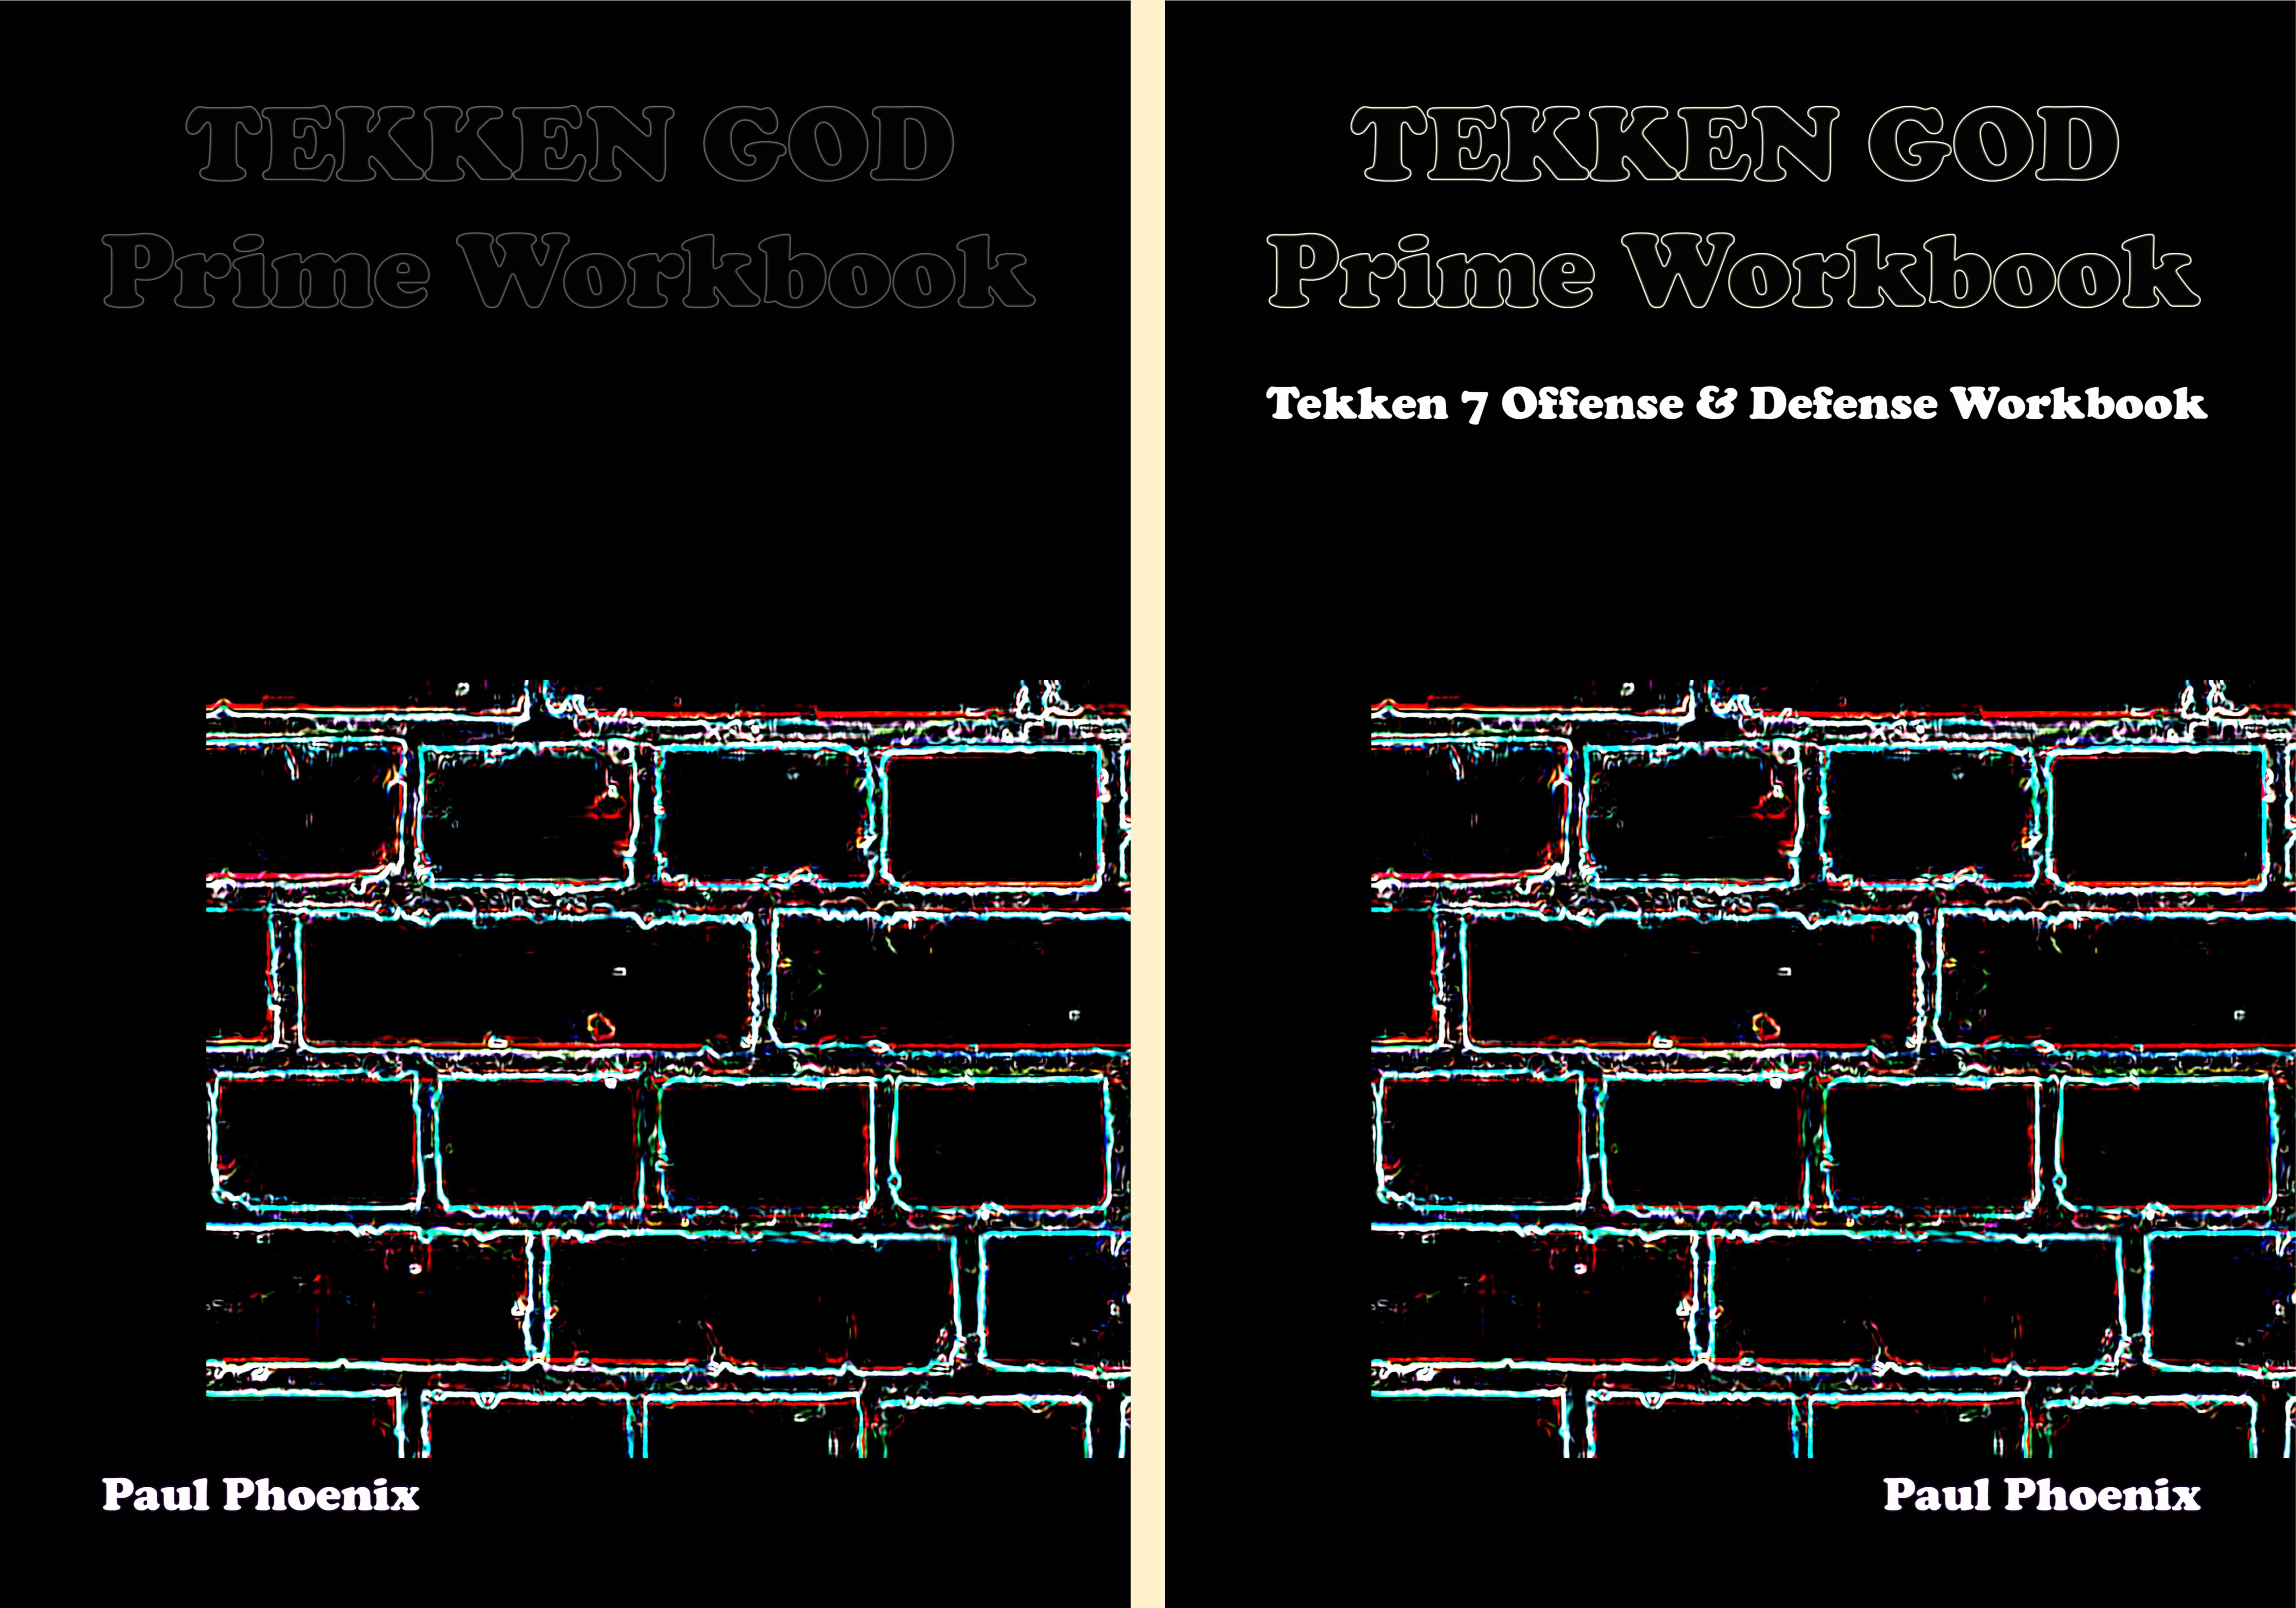 Tekken God Prime Workbook - Paul Phoenix: Tekken 7 Offense & Defense Workbook cover image